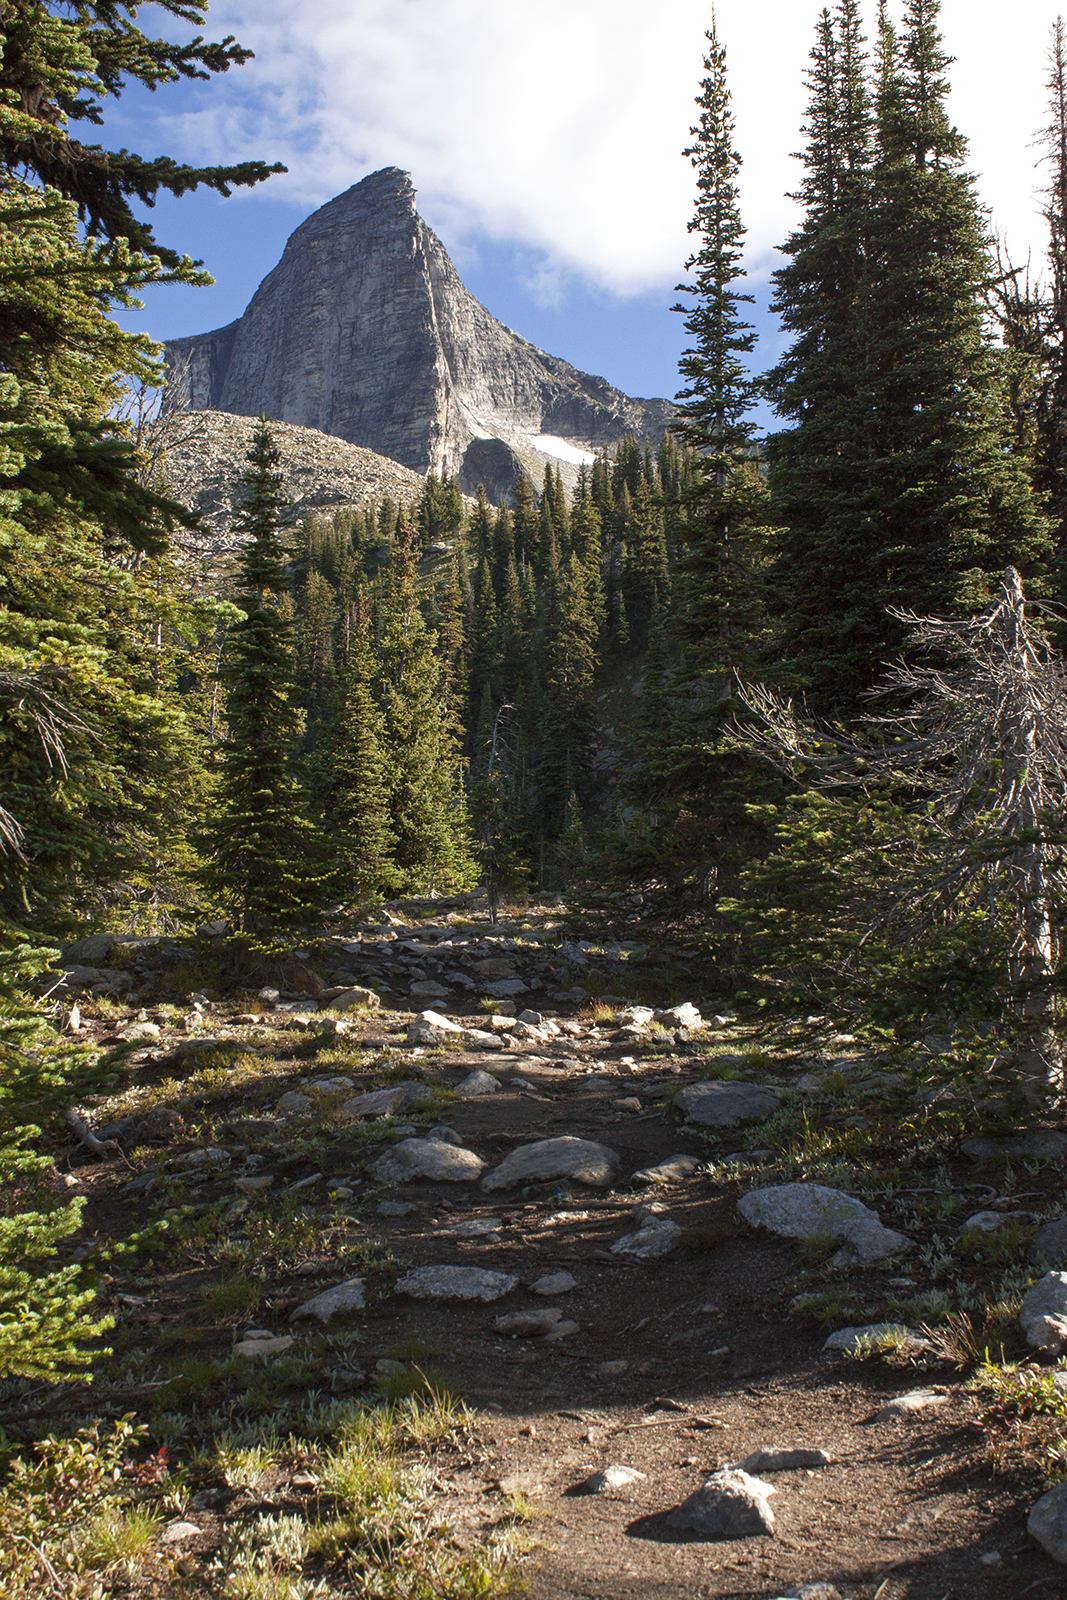 A rocky terrain leading to a large mountain.